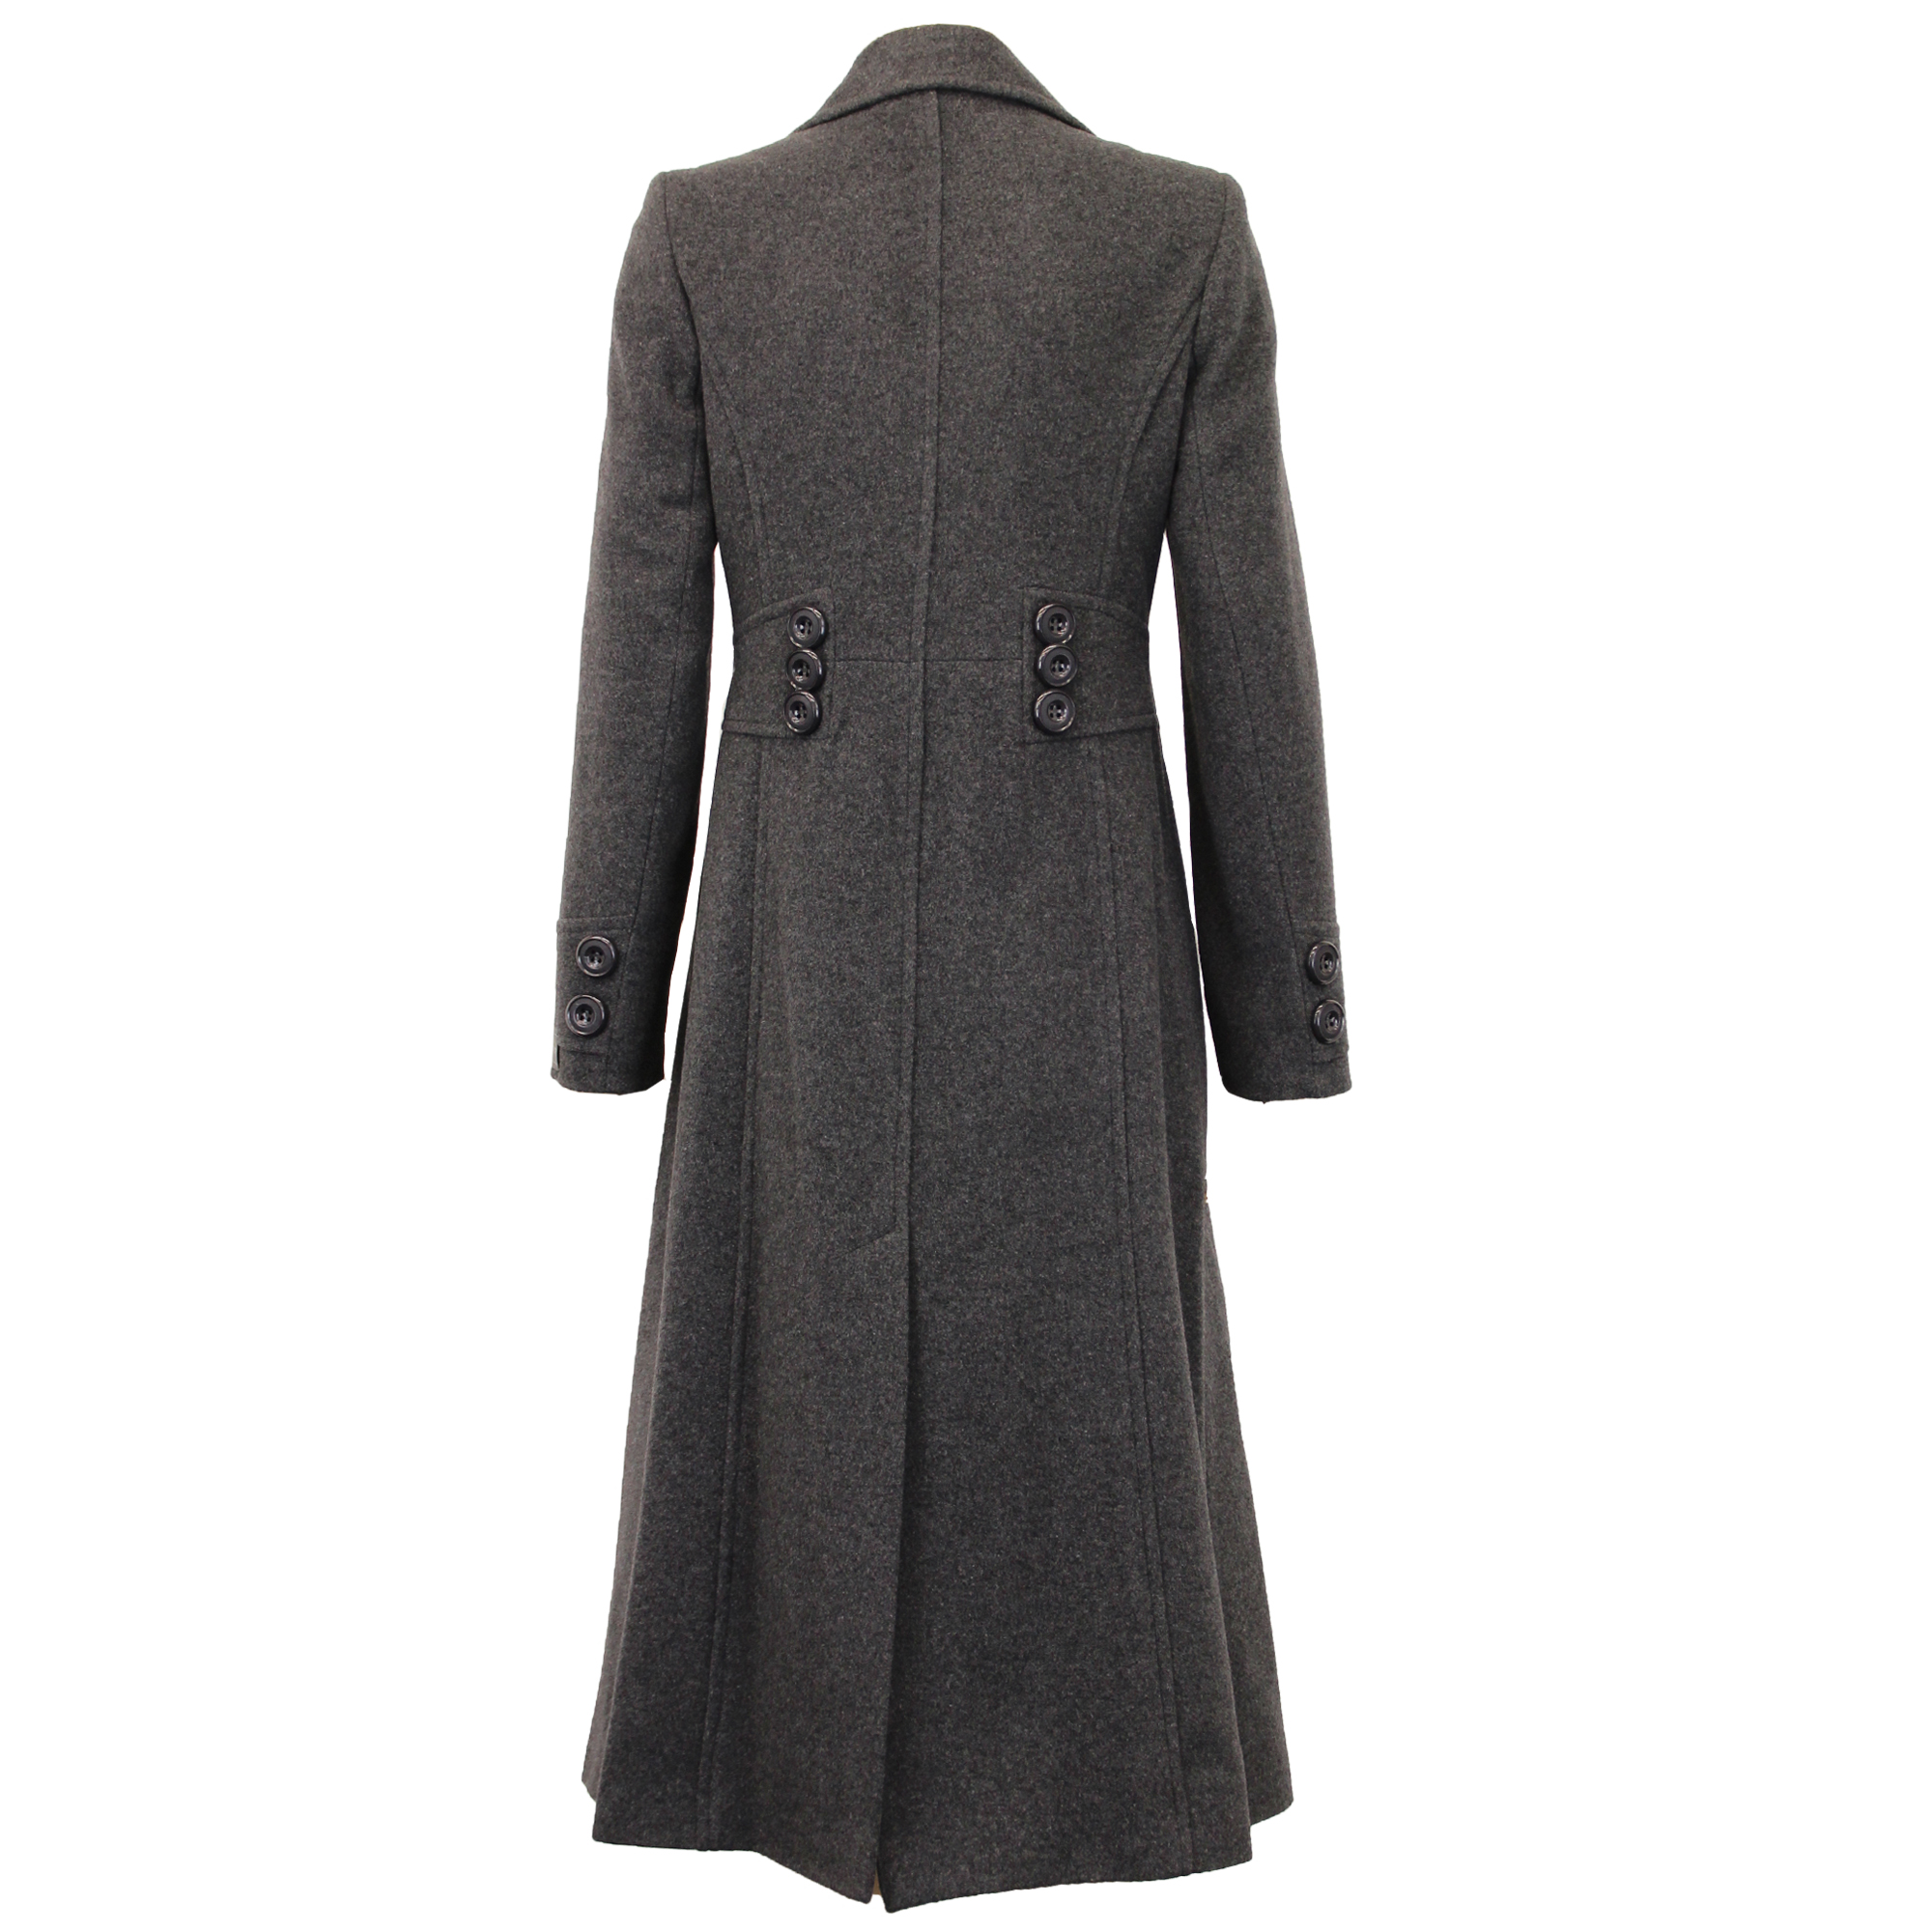 You searched for: ladies overcoat! Etsy is the home to thousands of handmade, vintage, and one-of-a-kind products and gifts related to your search. No matter what you're looking for or where you are in the world, our global marketplace of sellers can help you find unique and affordable options. Let's get started!